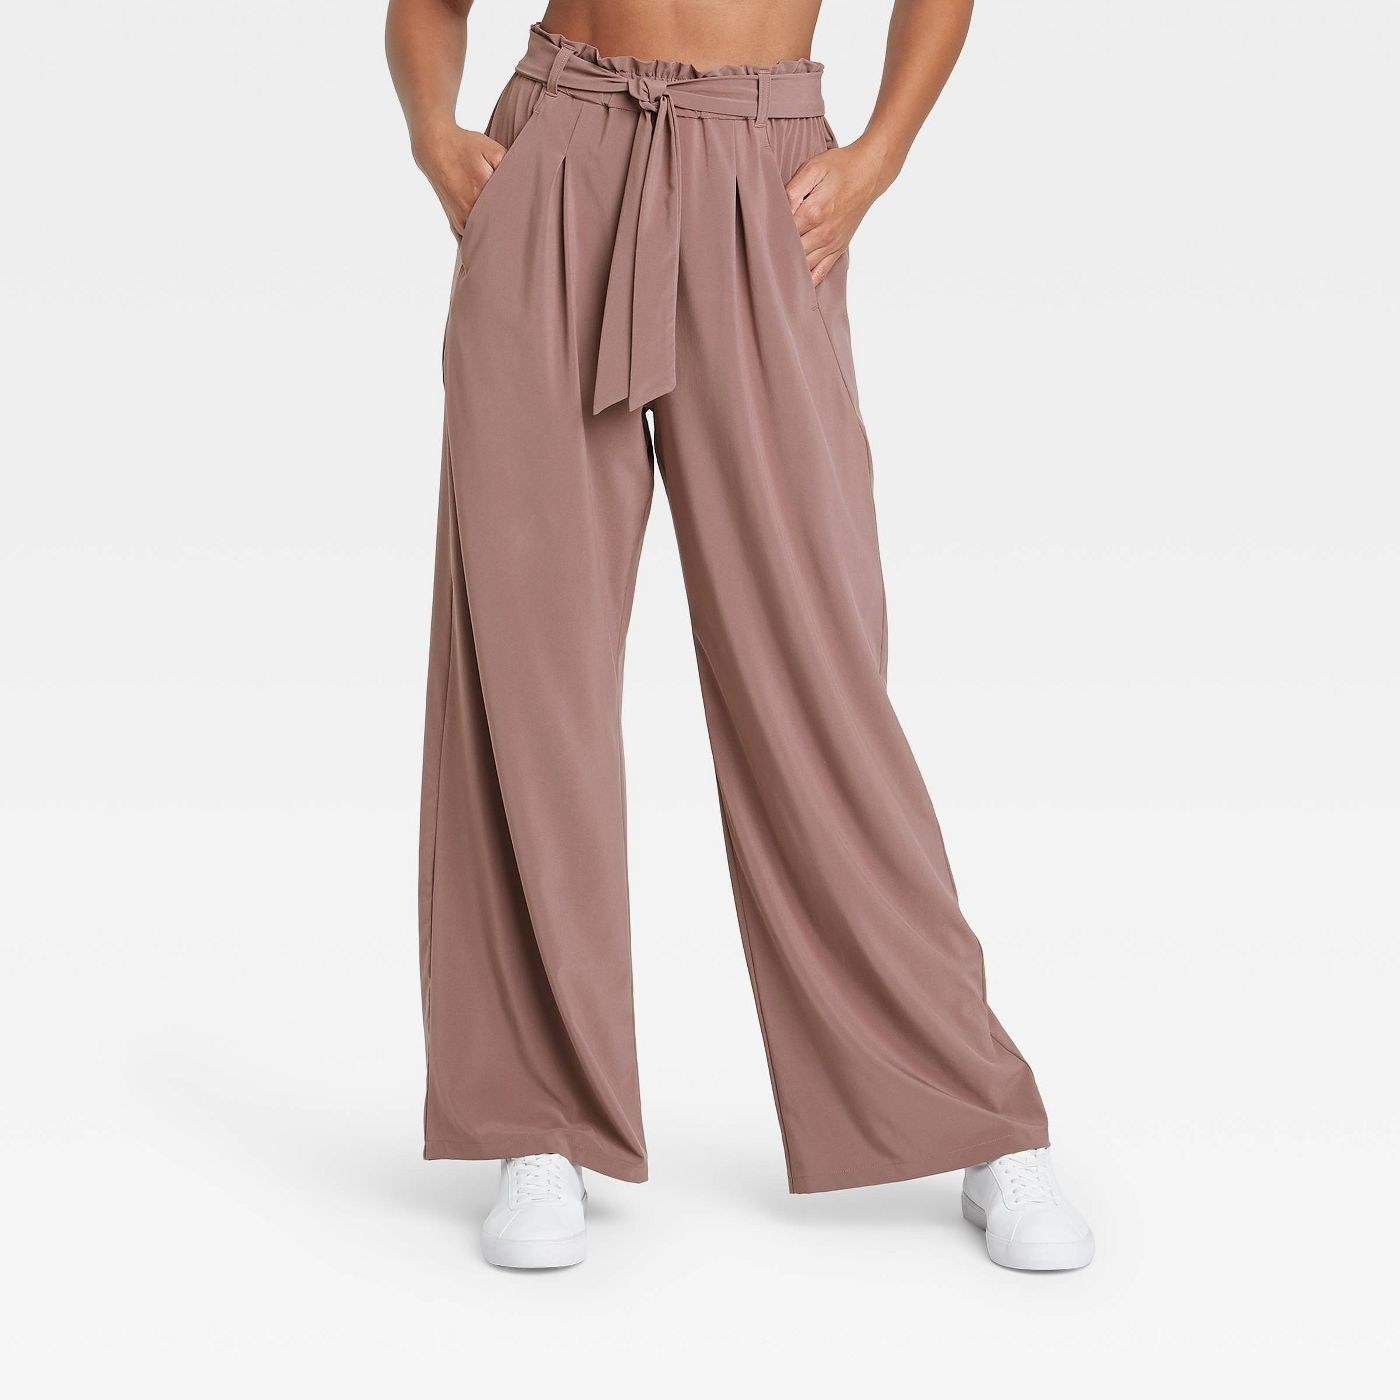 model in wide leg stretch pants with sneakers